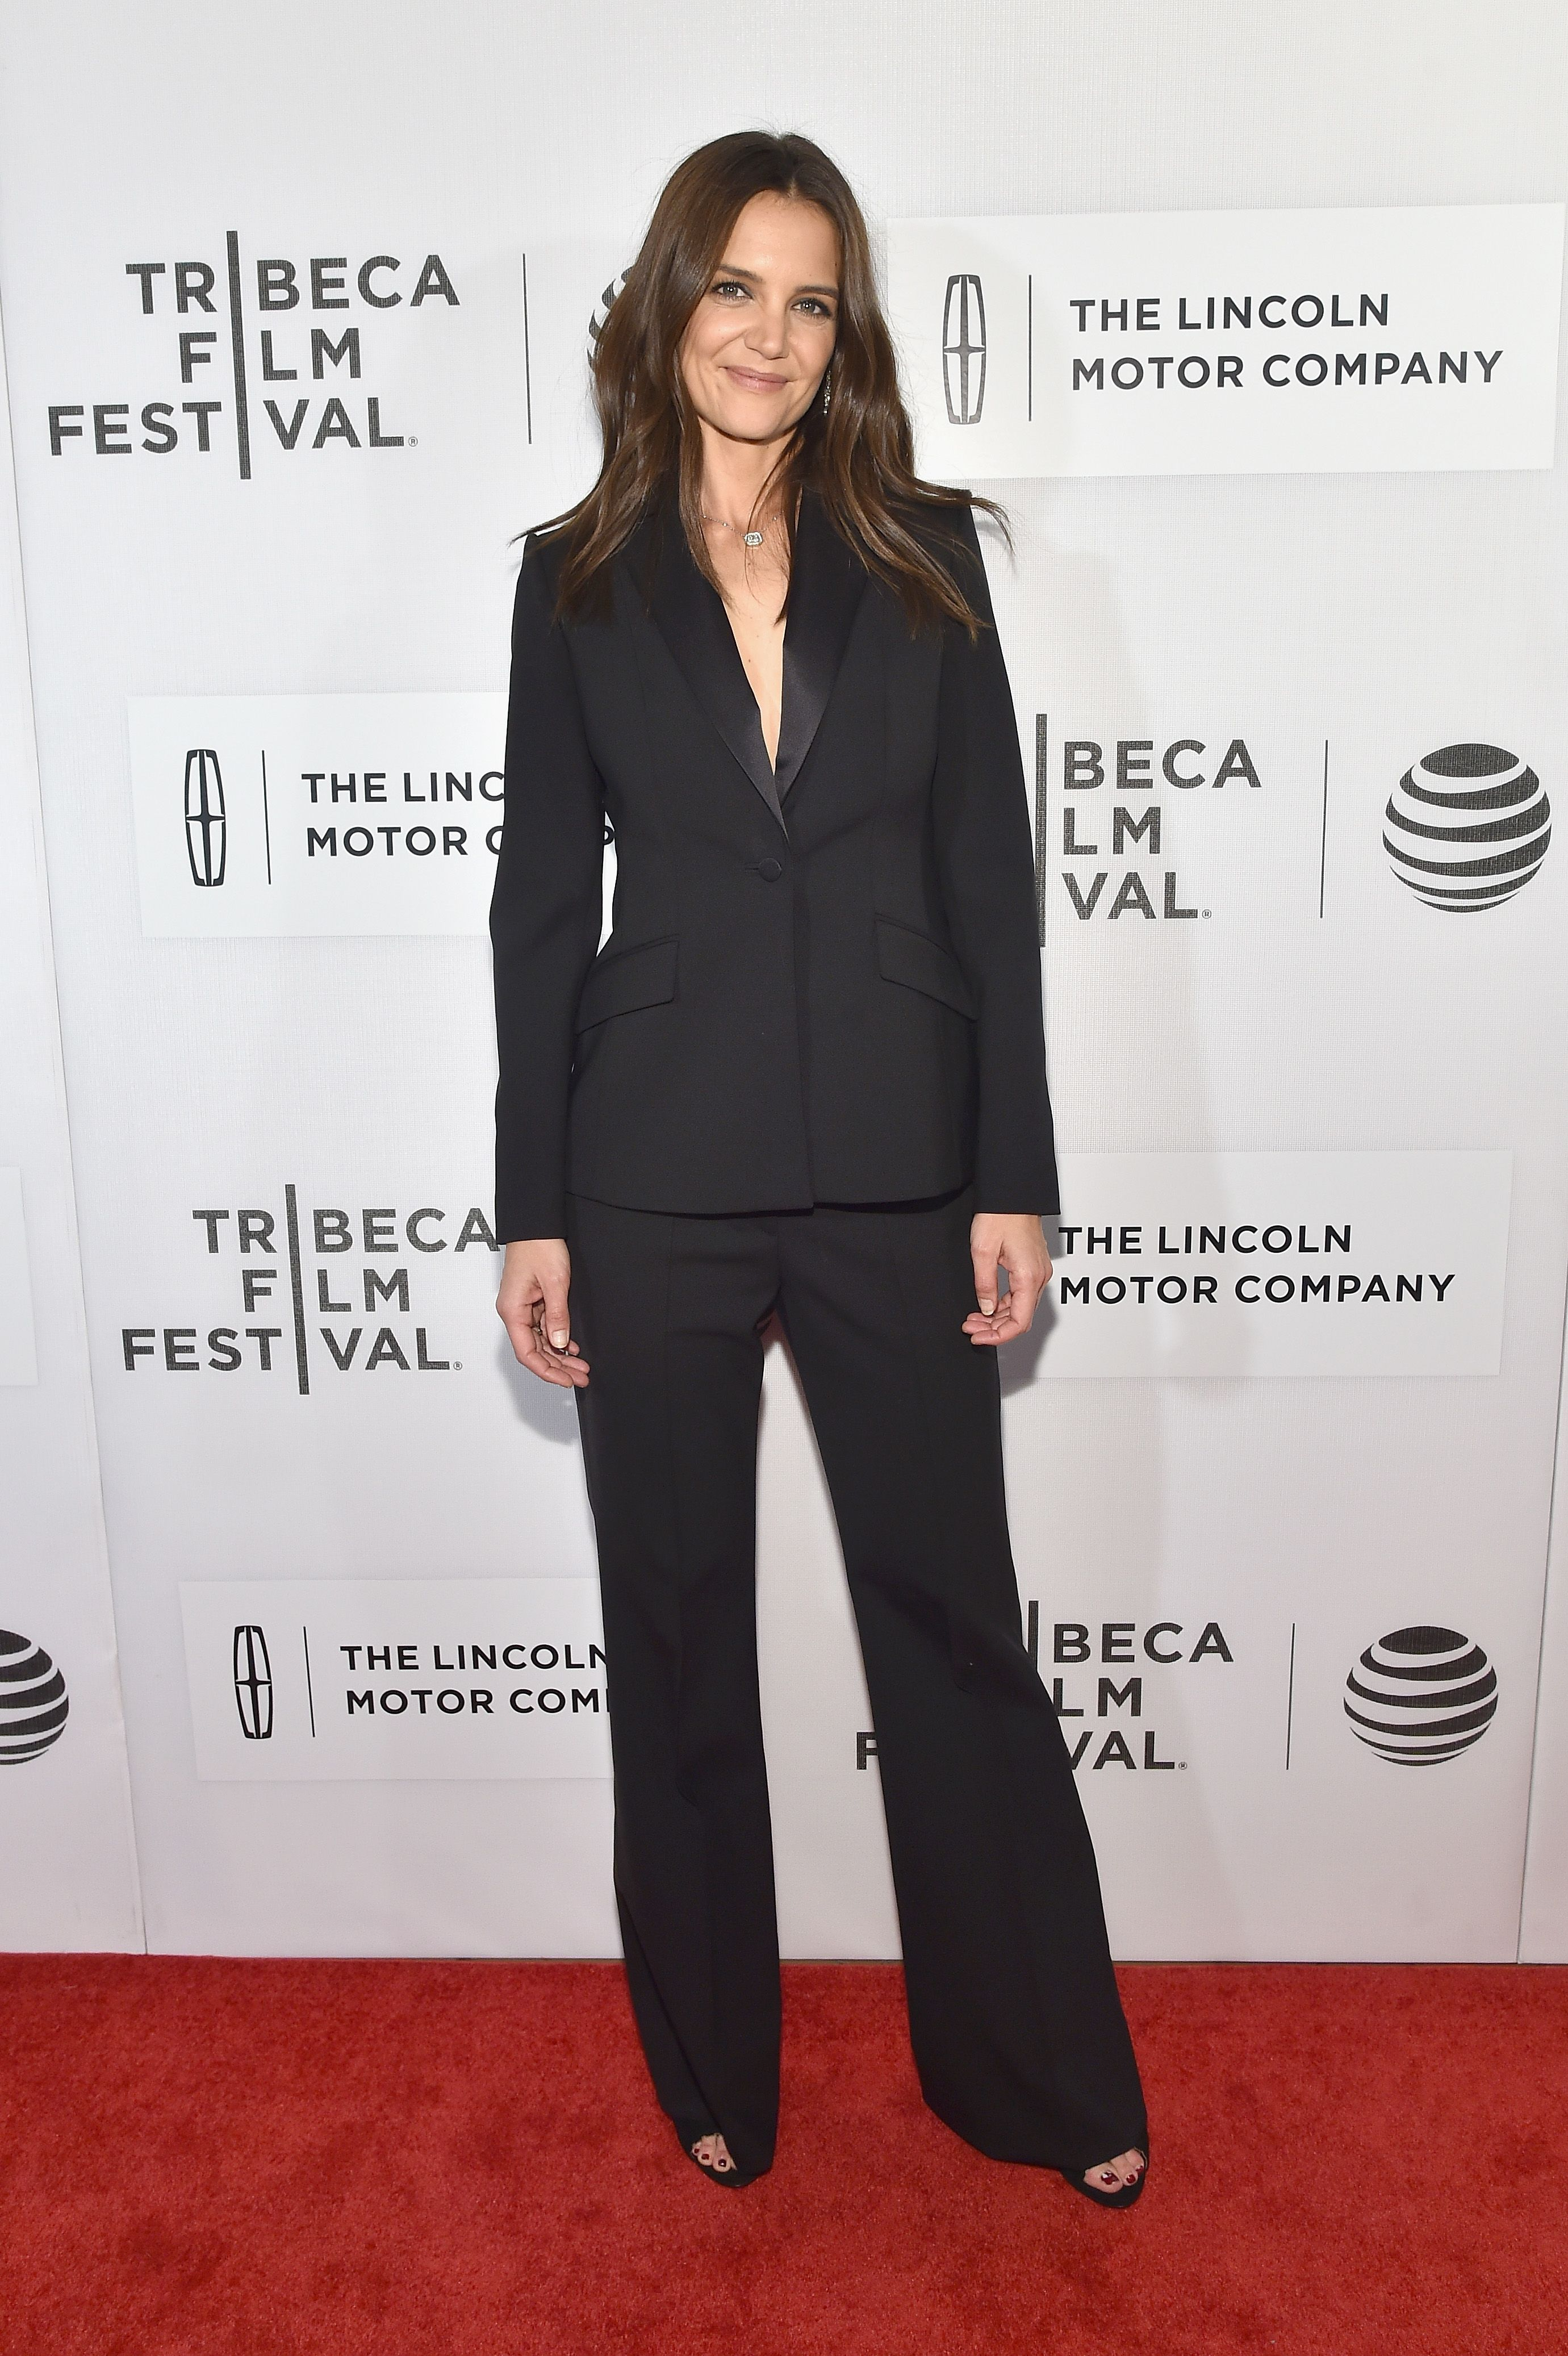 cb207bafd6e Katie Holmes Style Photos - Katie Holmes Best Outfits